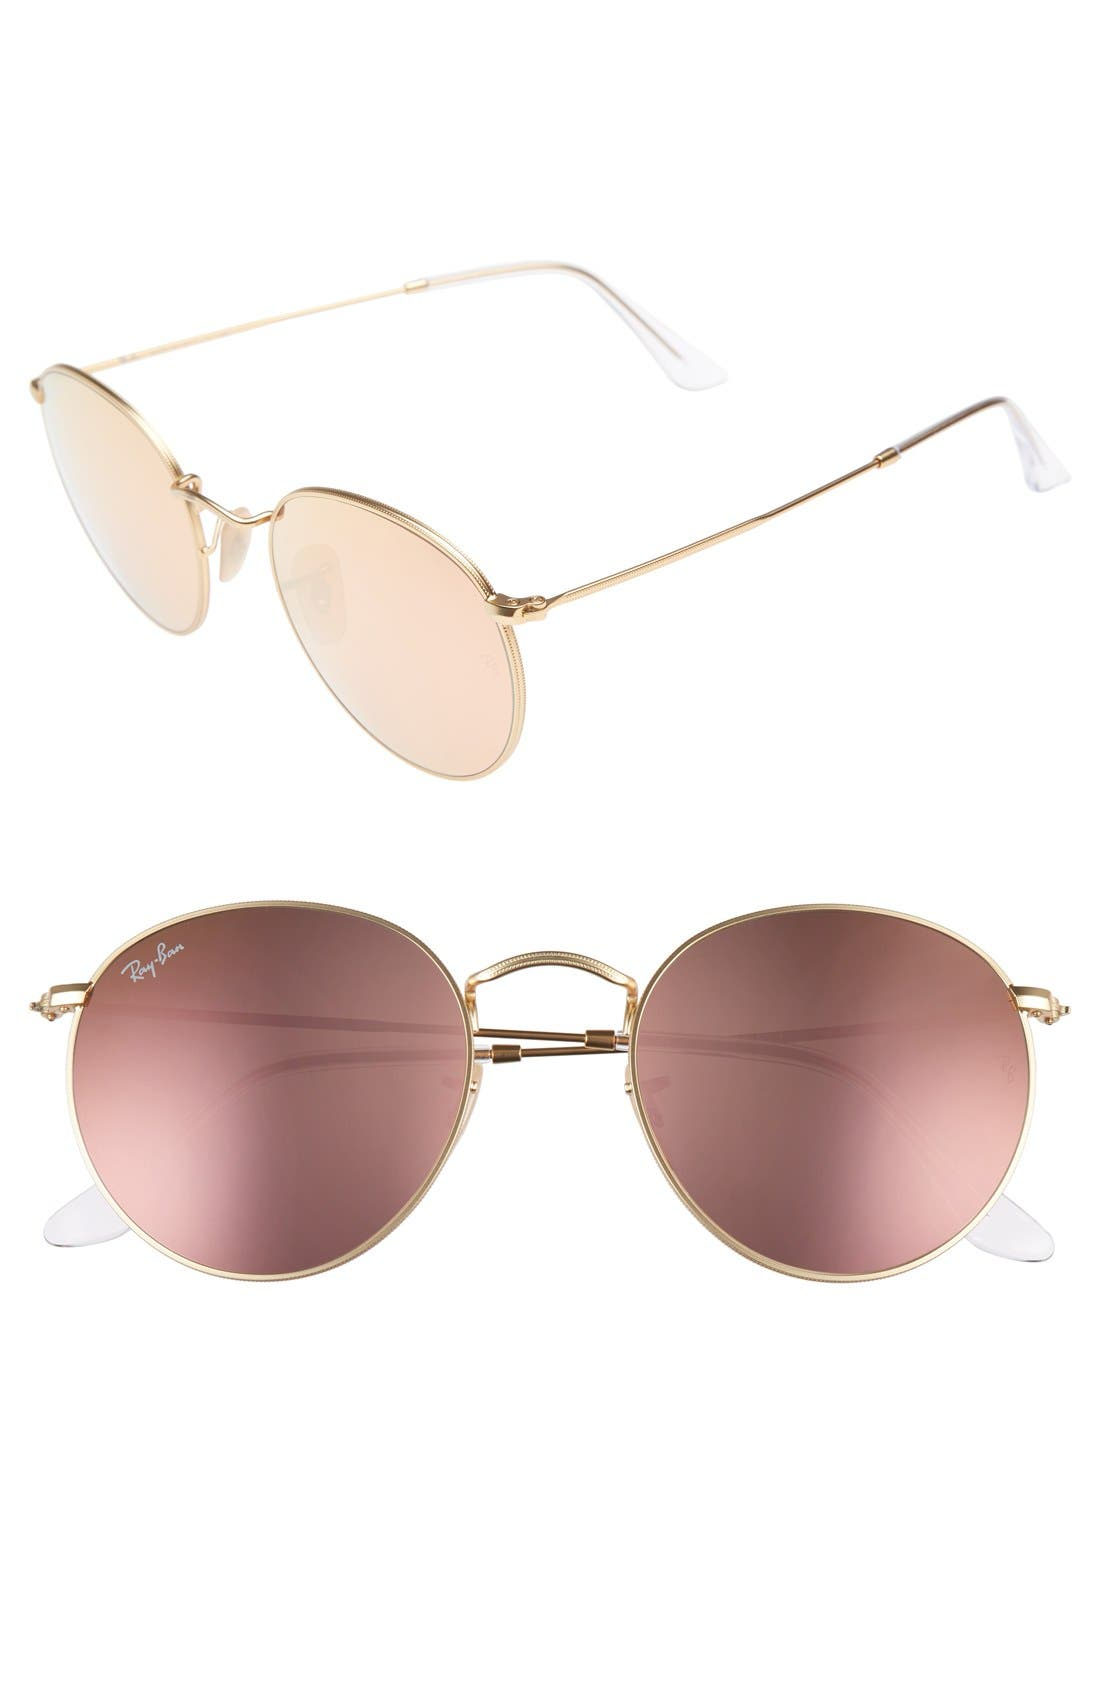 Icons 53mm Retro Sunglasses,                         Main,                         color, Brown/ Pink